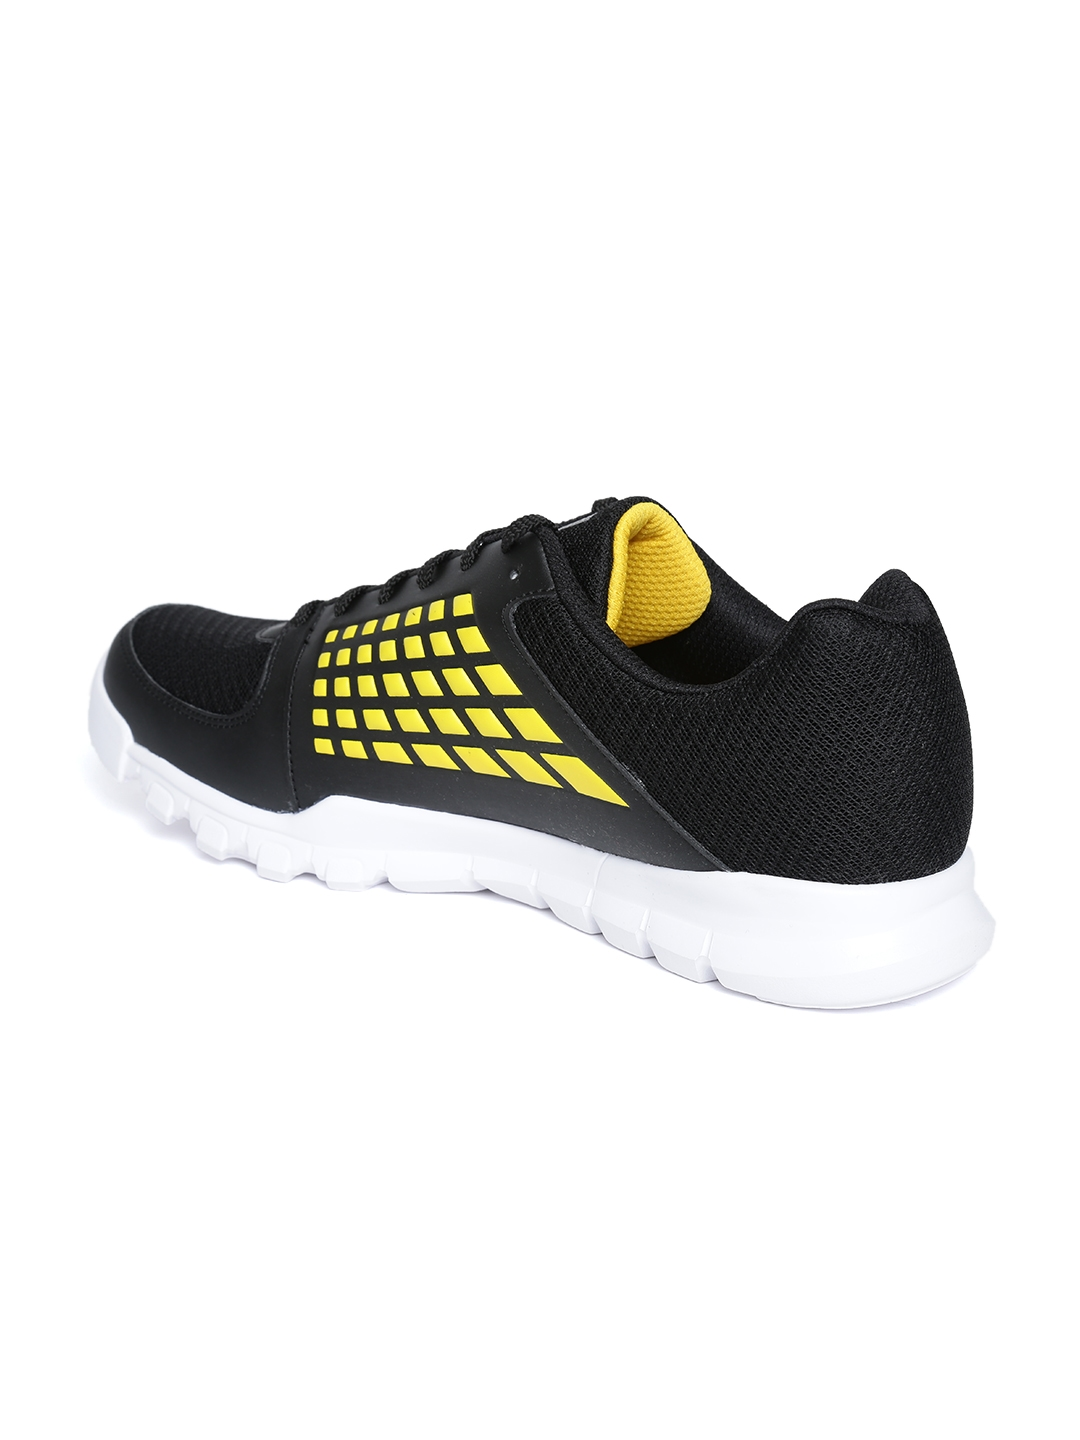 34422cebcc1c Buy Reebok Men Black Electrify Speed Xtreme Running Shoes - Sports ...